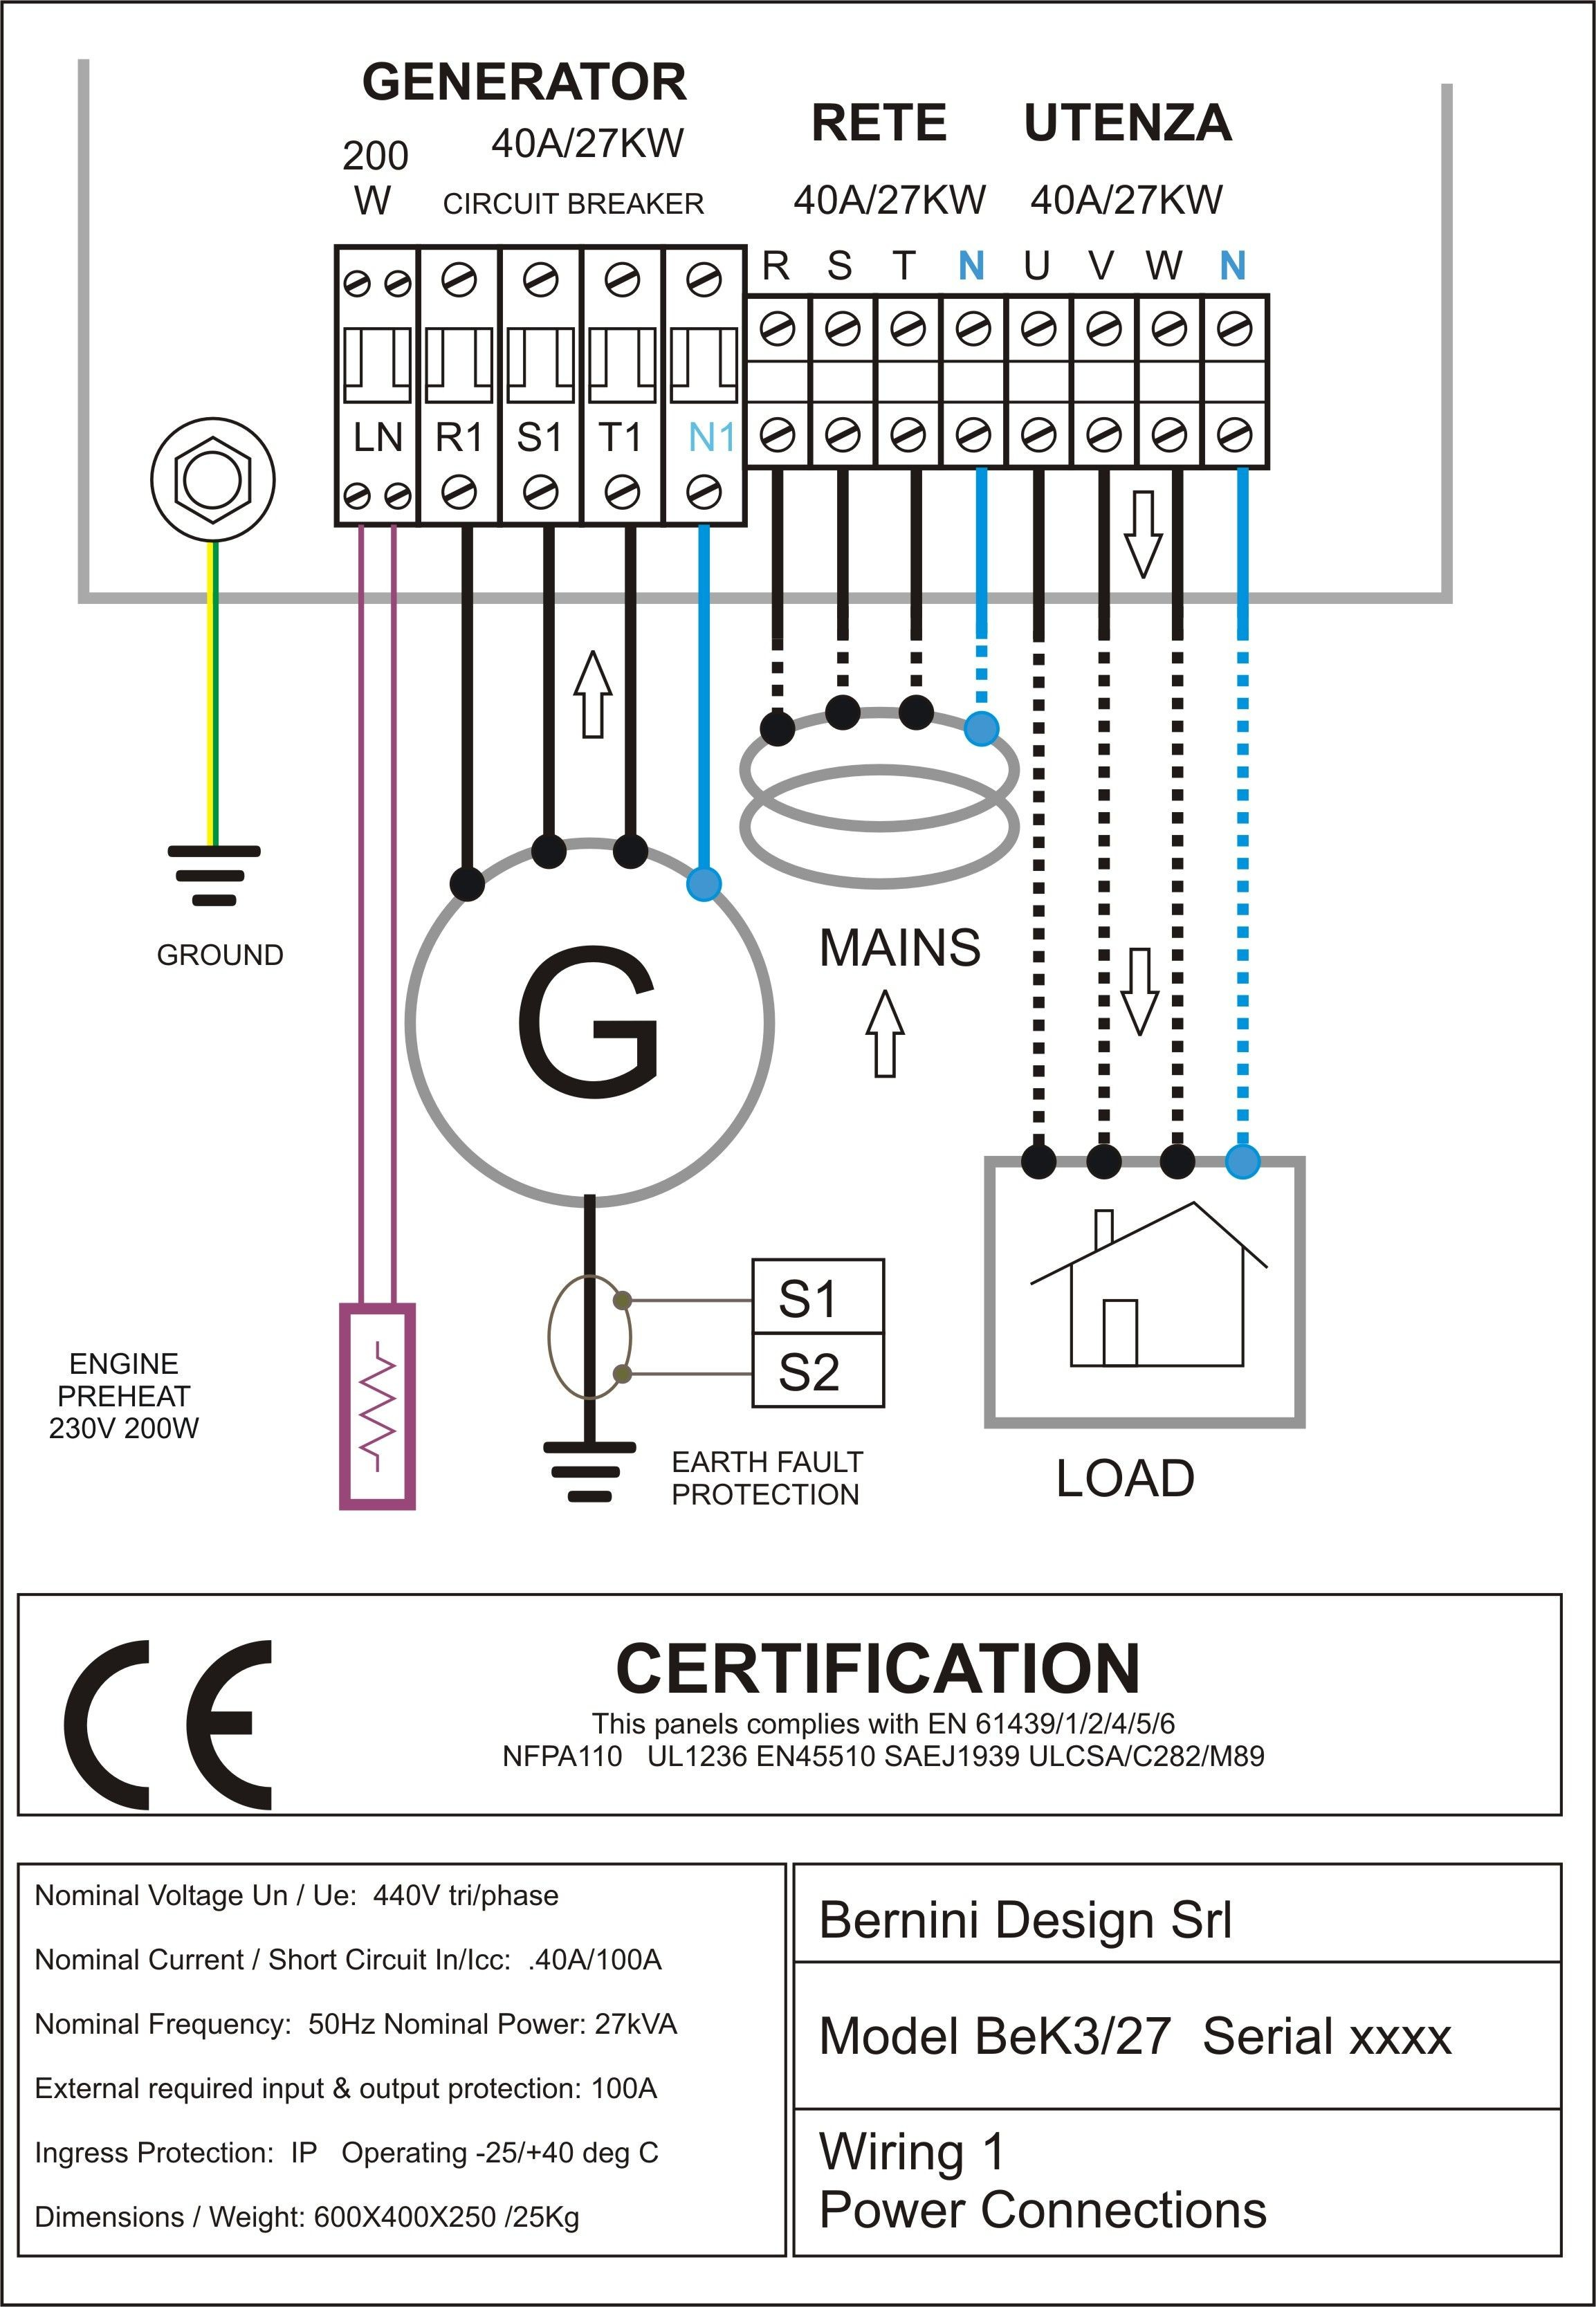 Ac Diagram Auto 94 Chevy Blower Motor Free Download Wiring Generator Circuit Schematic Sel Control Panel Connections Of